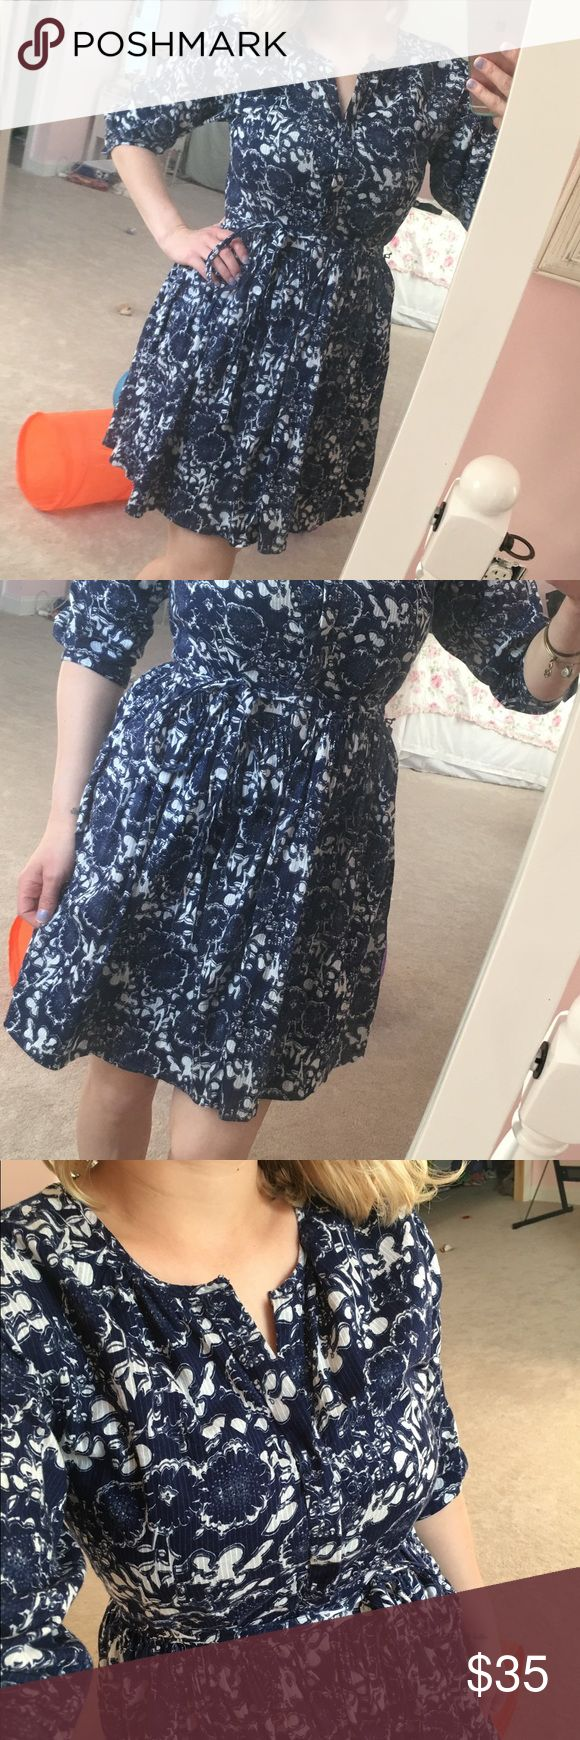 Floral GAP dress Great condition!!! Quarter length sleeves, buttoned all the way down, ties around waist. I am 5 feet for reference GAP Dresses Midi